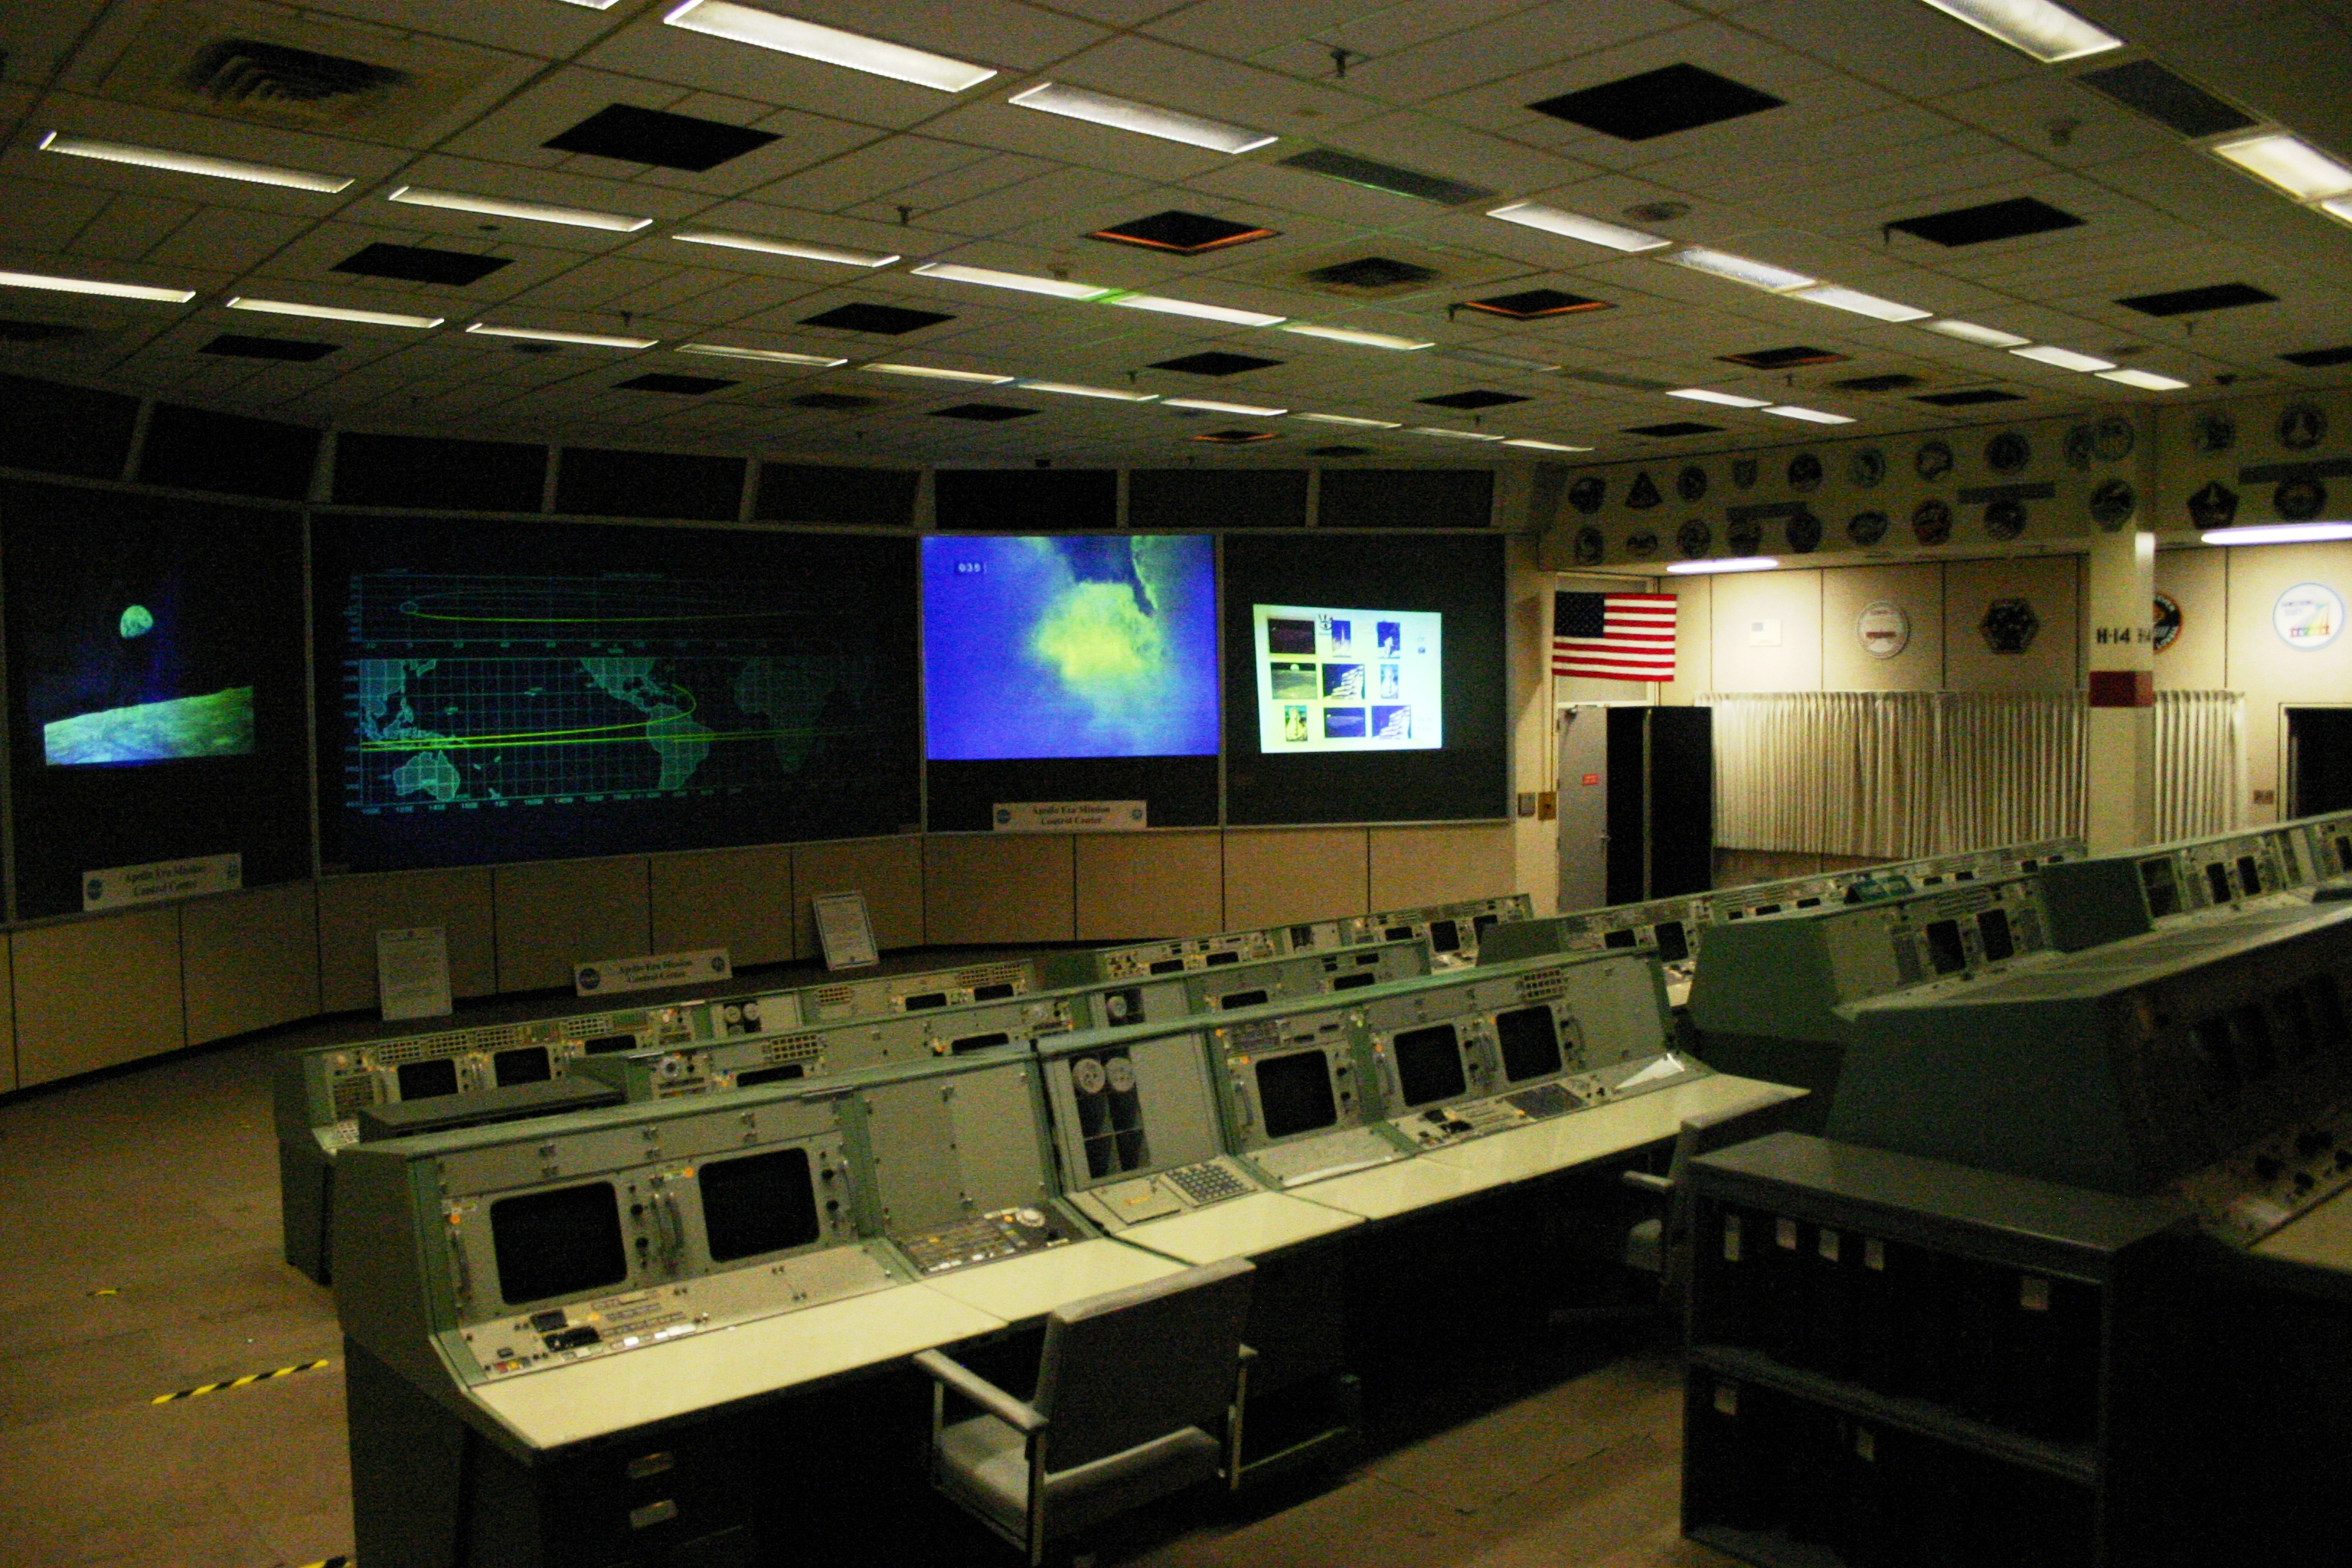 houston mission control center - photo #3